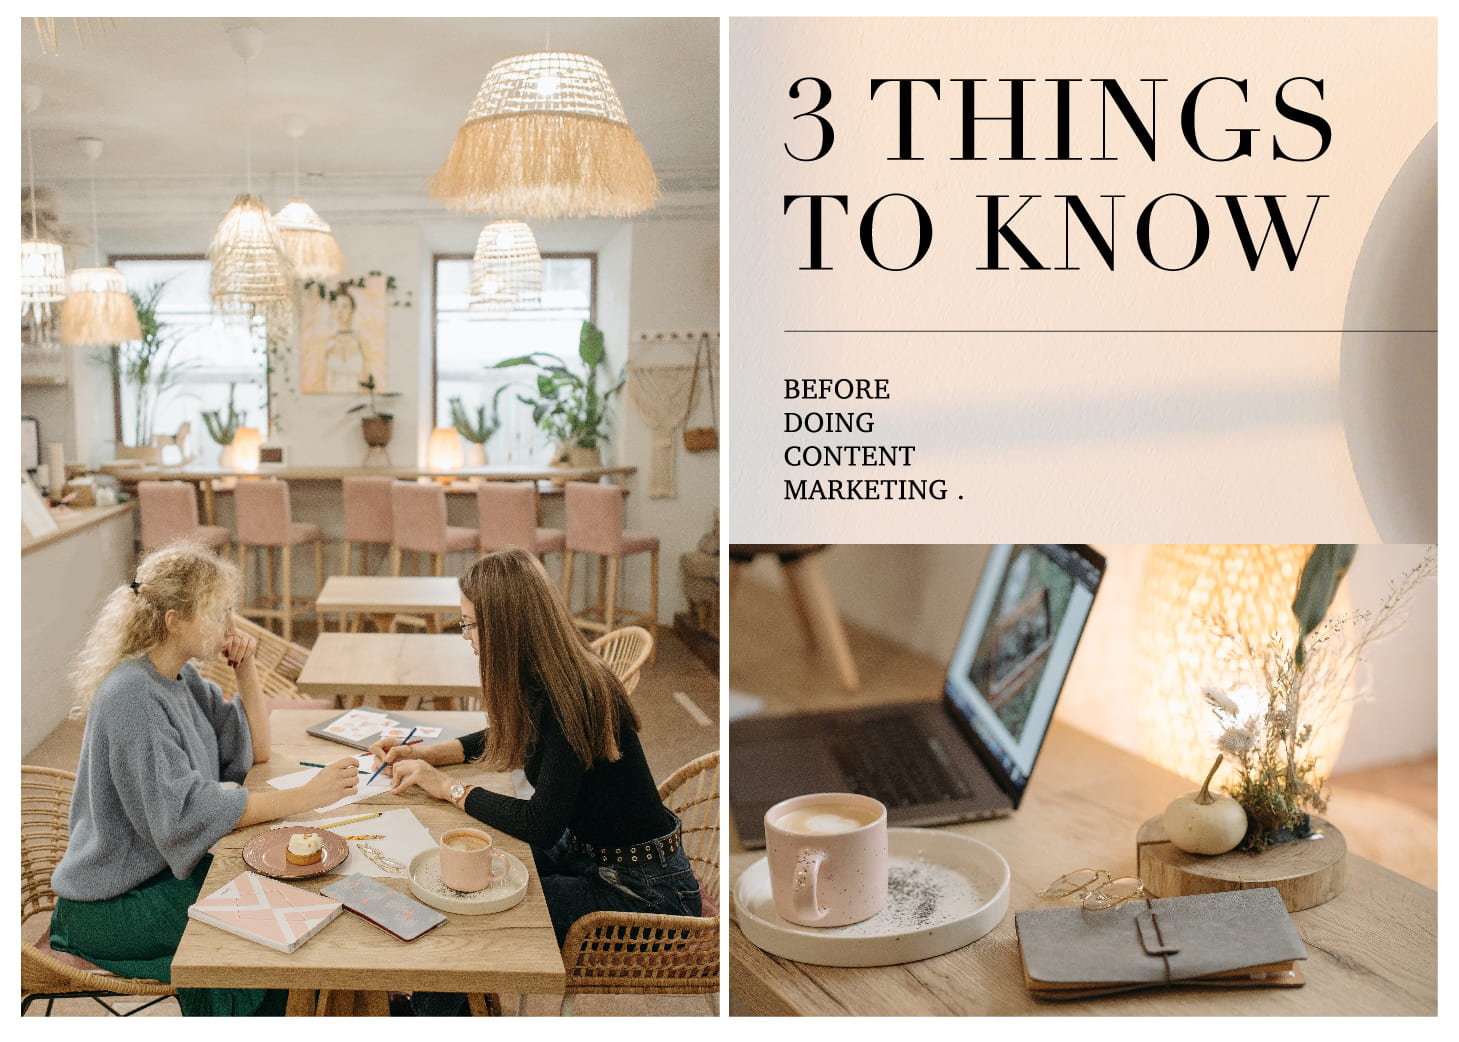 3 Things To Know Before Doing Content Marketing【行銷人】你的「行銷文案」夠吸引人嗎?做內容行銷前,需要先思考的3件事